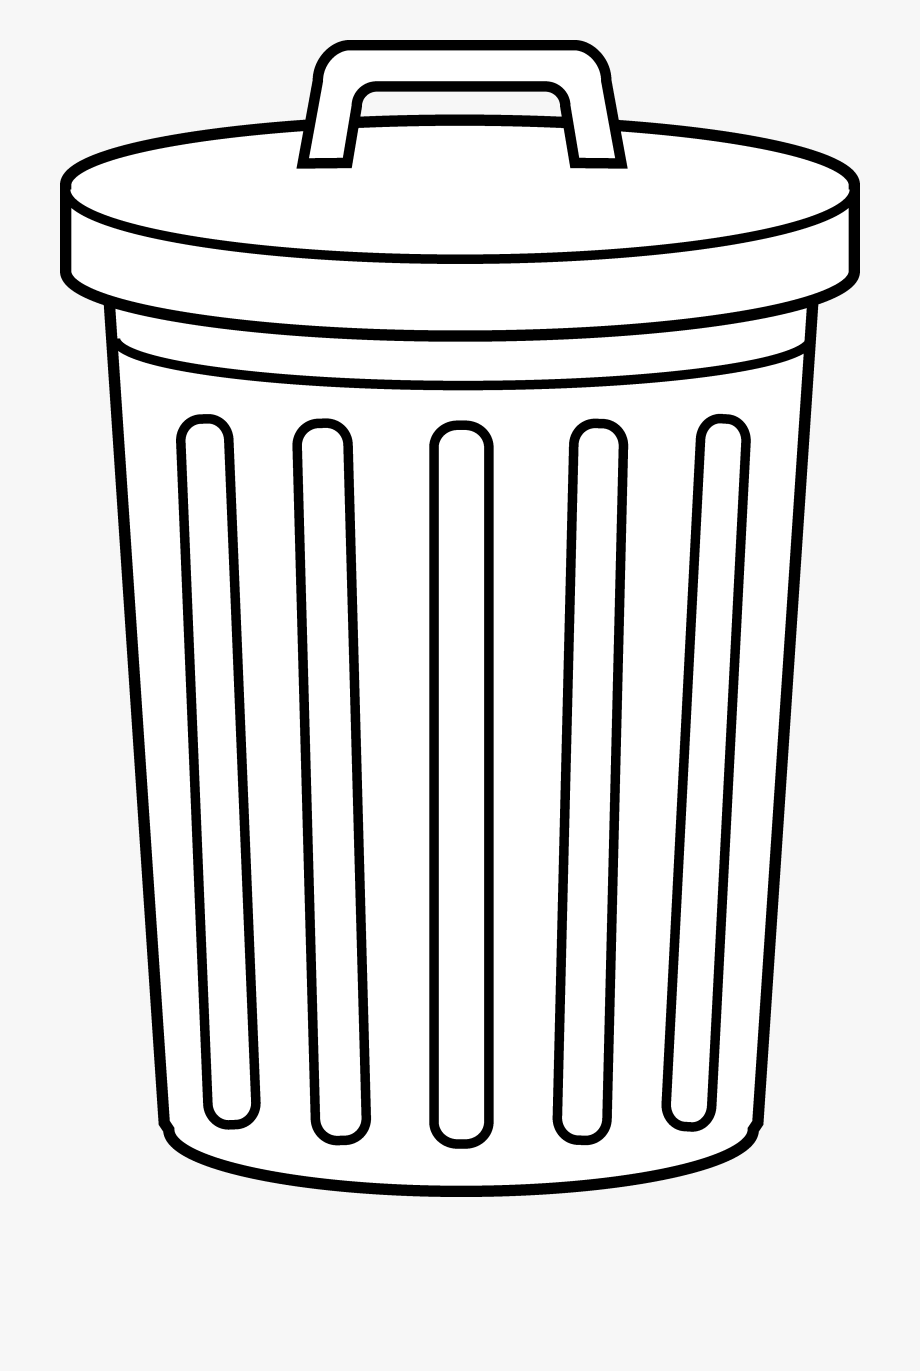 royalty free Download for free png. Trashcan clipart garbage pail